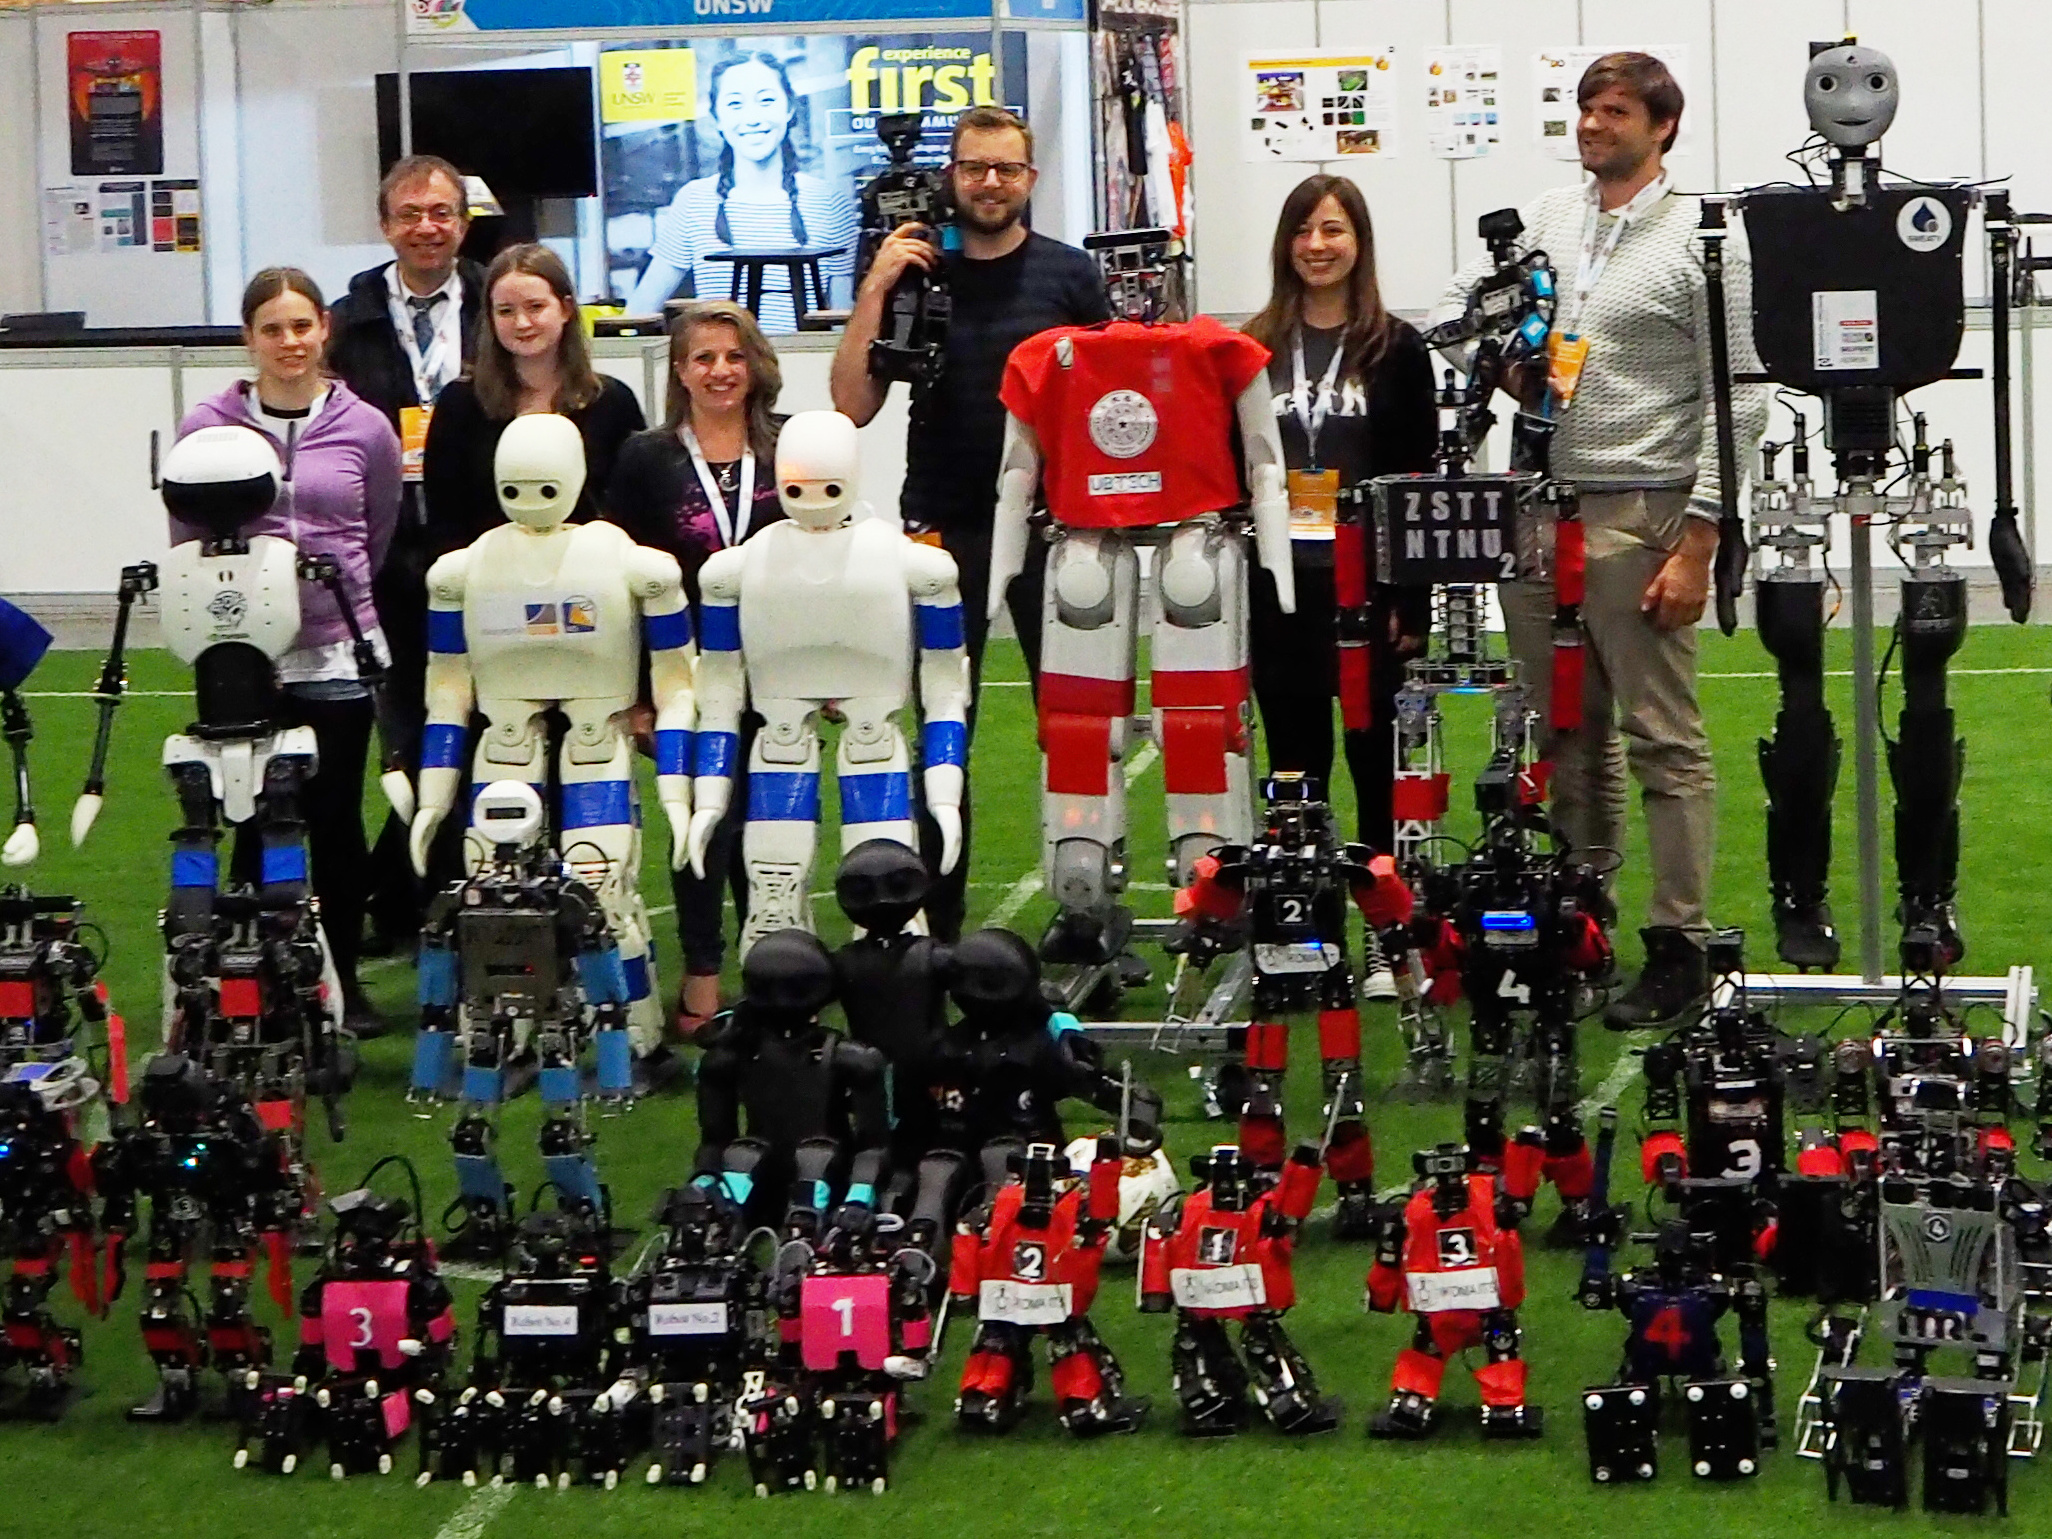 BoldHearts team at the RoboCup 2019 in Sydney / Australia